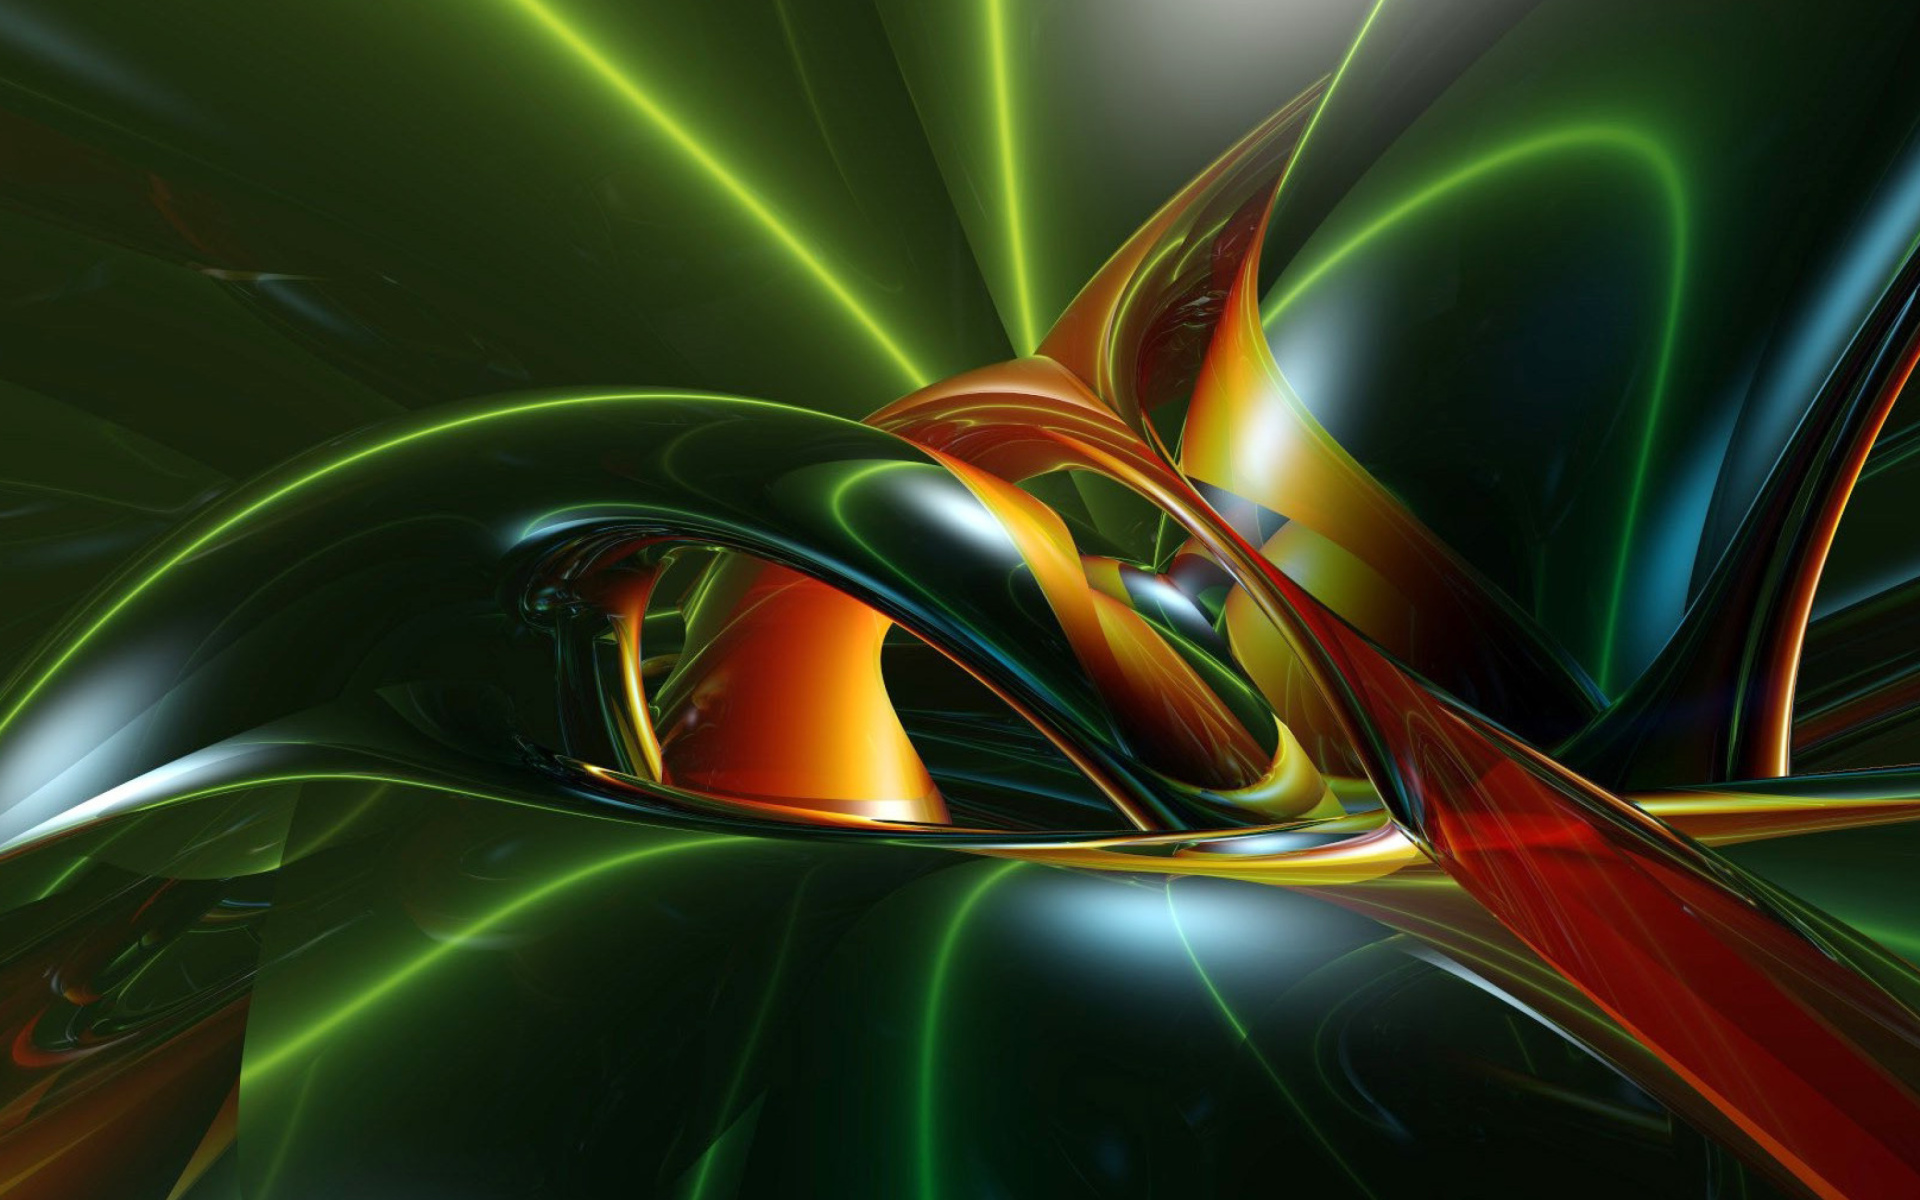 abstract 3d wallpaper 1920x1080 - photo #41